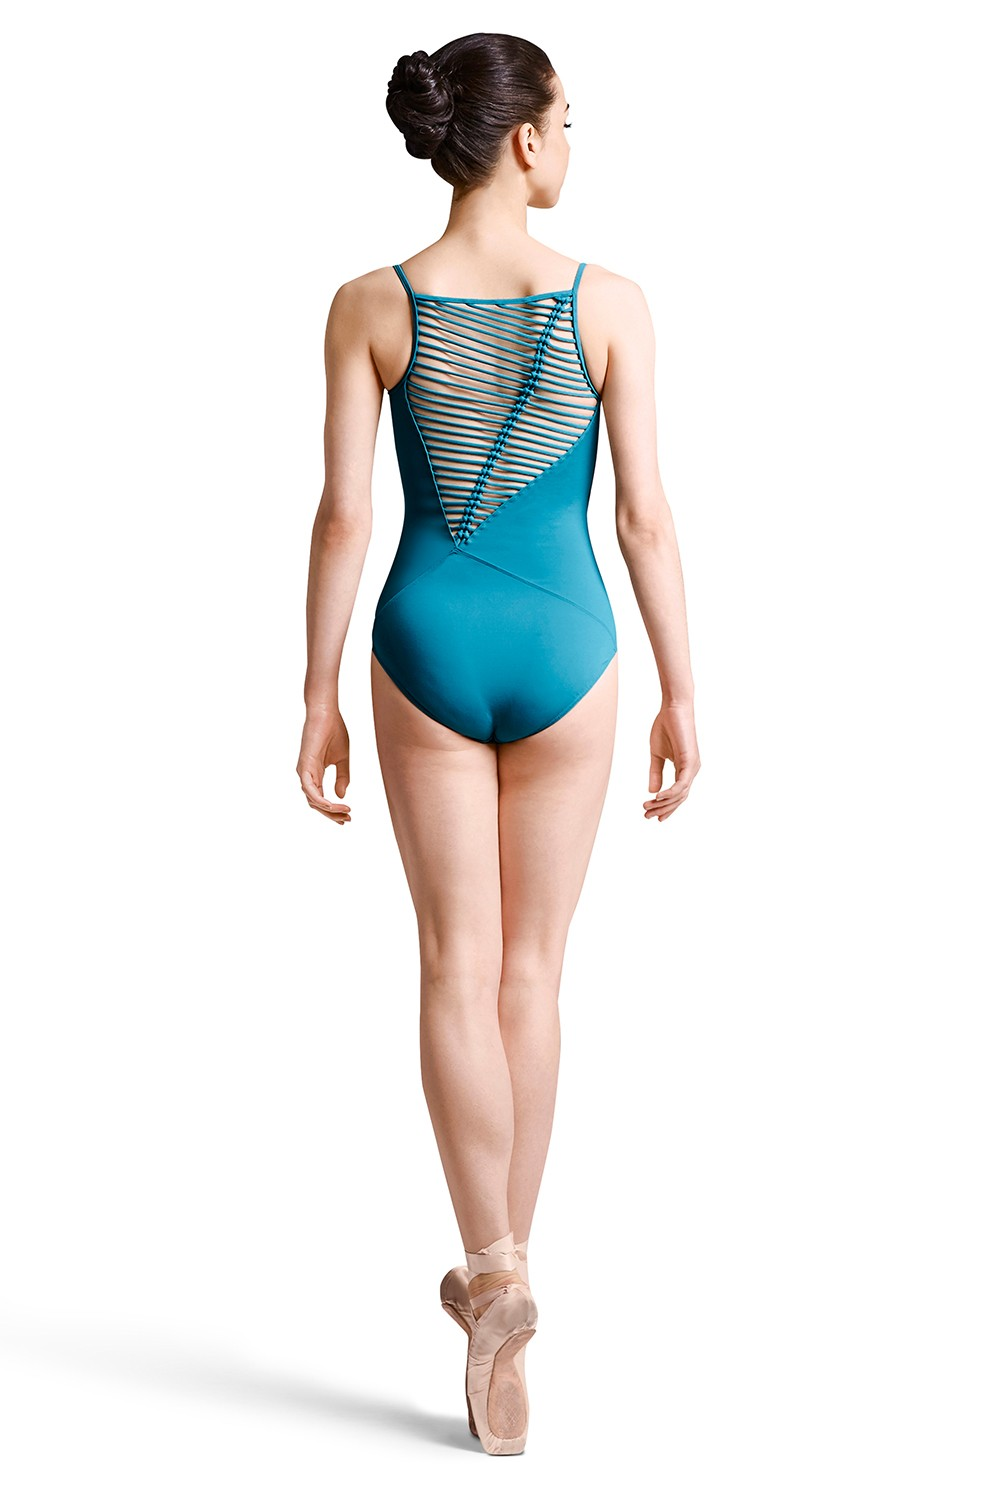 Body Con Retro Dal Design Asimmetrico Women's Dance Leotards